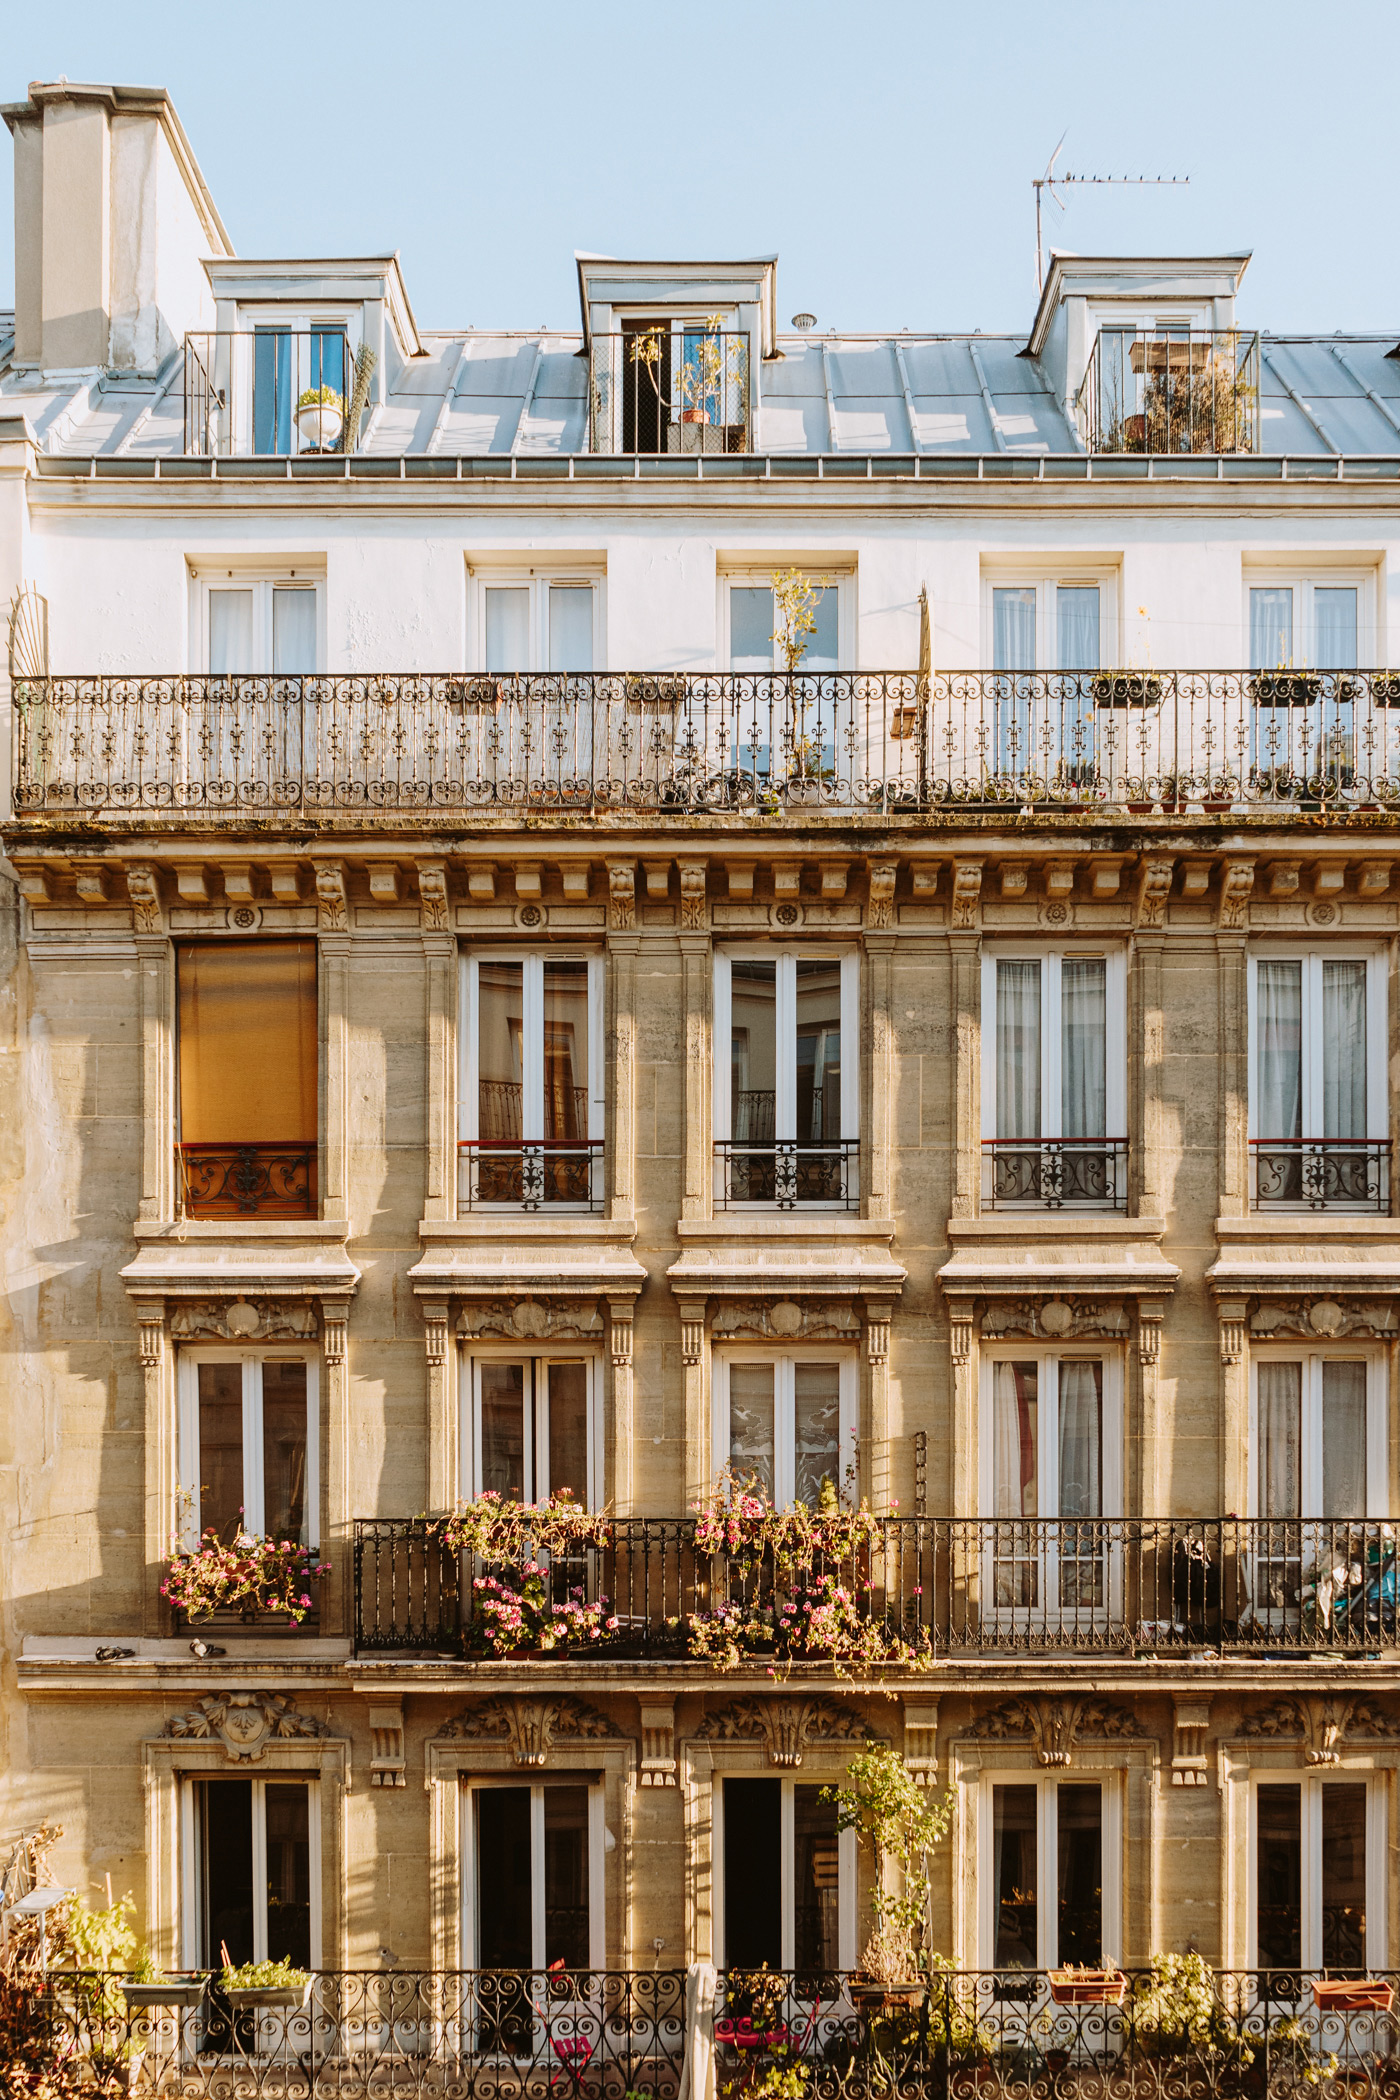 Paris, France by Jessie May